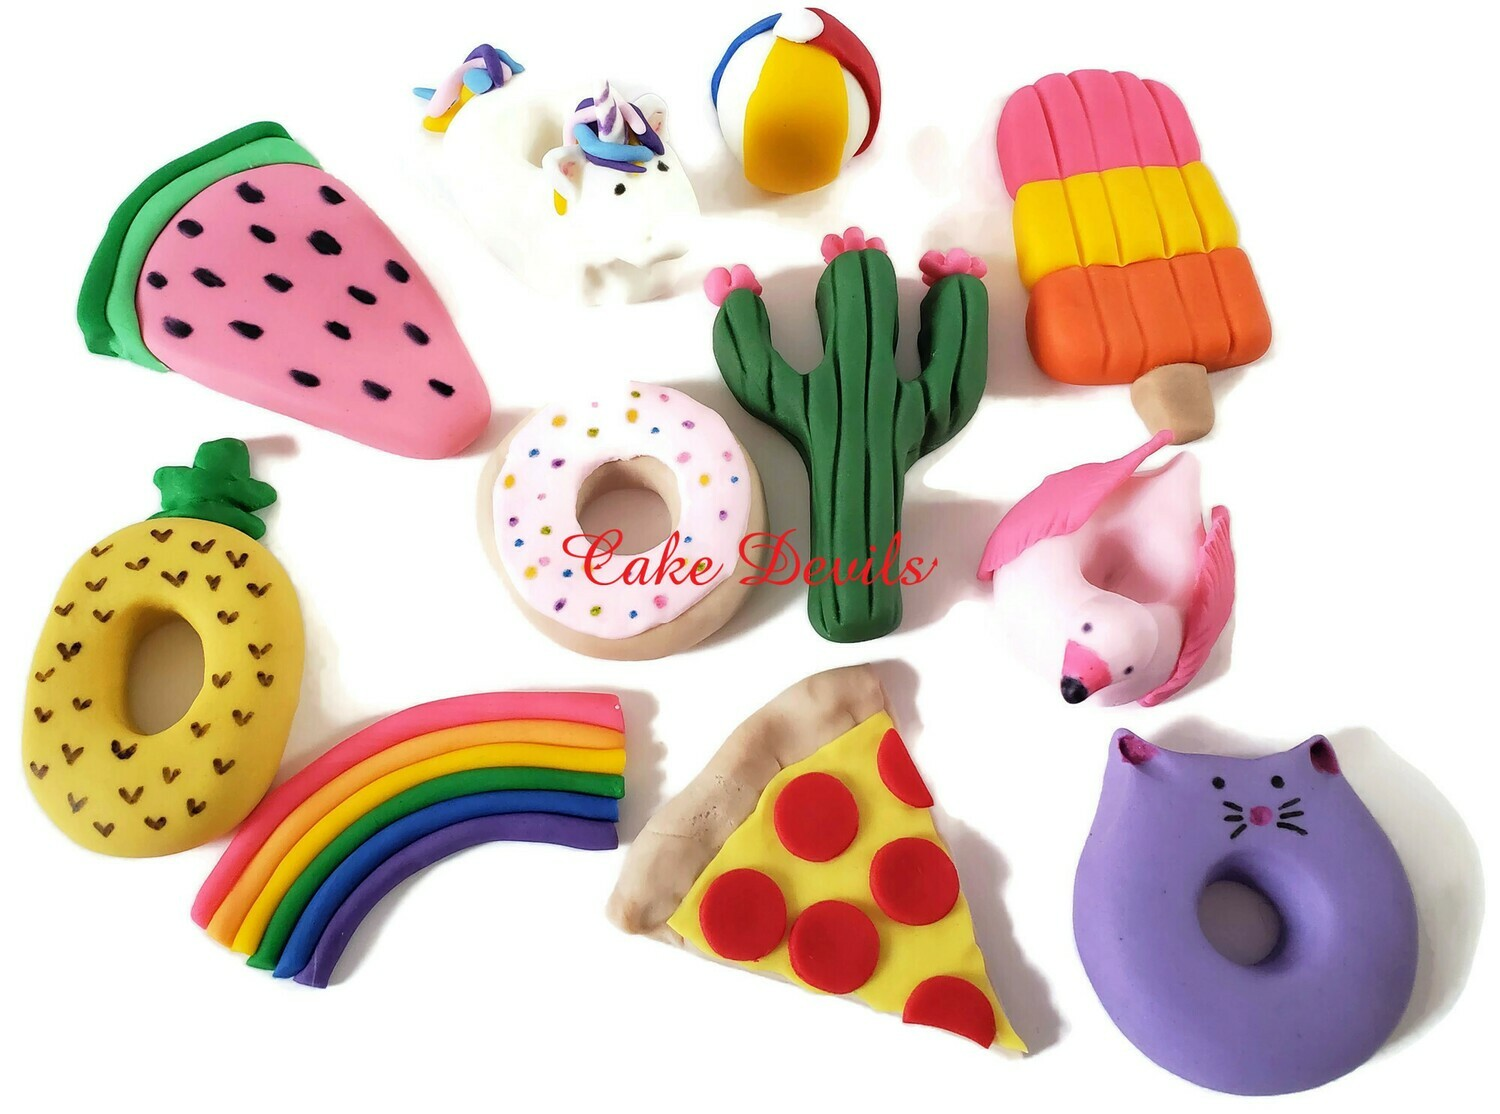 Fun Shape Fondant Pool Party Cake Toppers, Unicorn, Pizza, Doughnut, pineapple, and more!